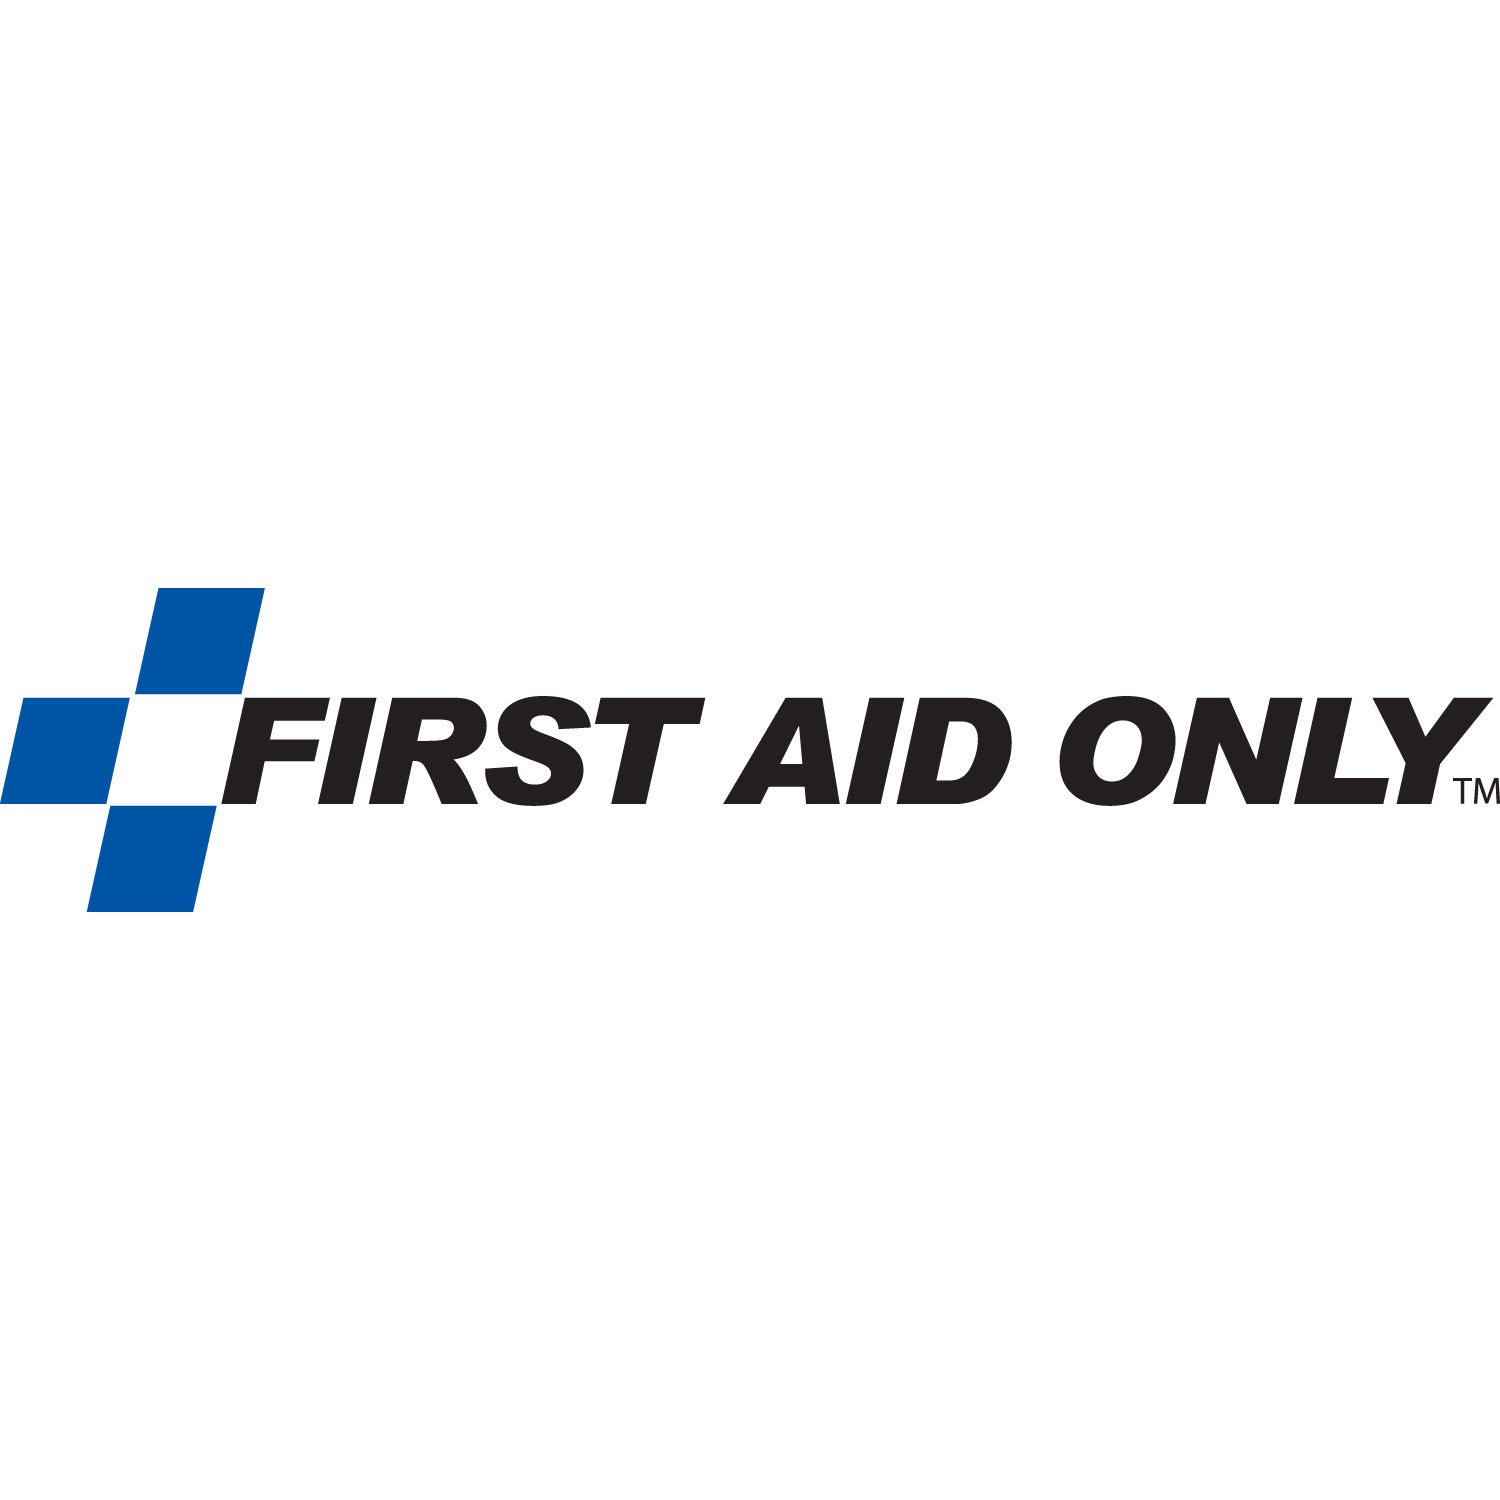 Smartcompliance First Aid Station For 25 People, 96 Pieces by First Aid Only (Image #2)